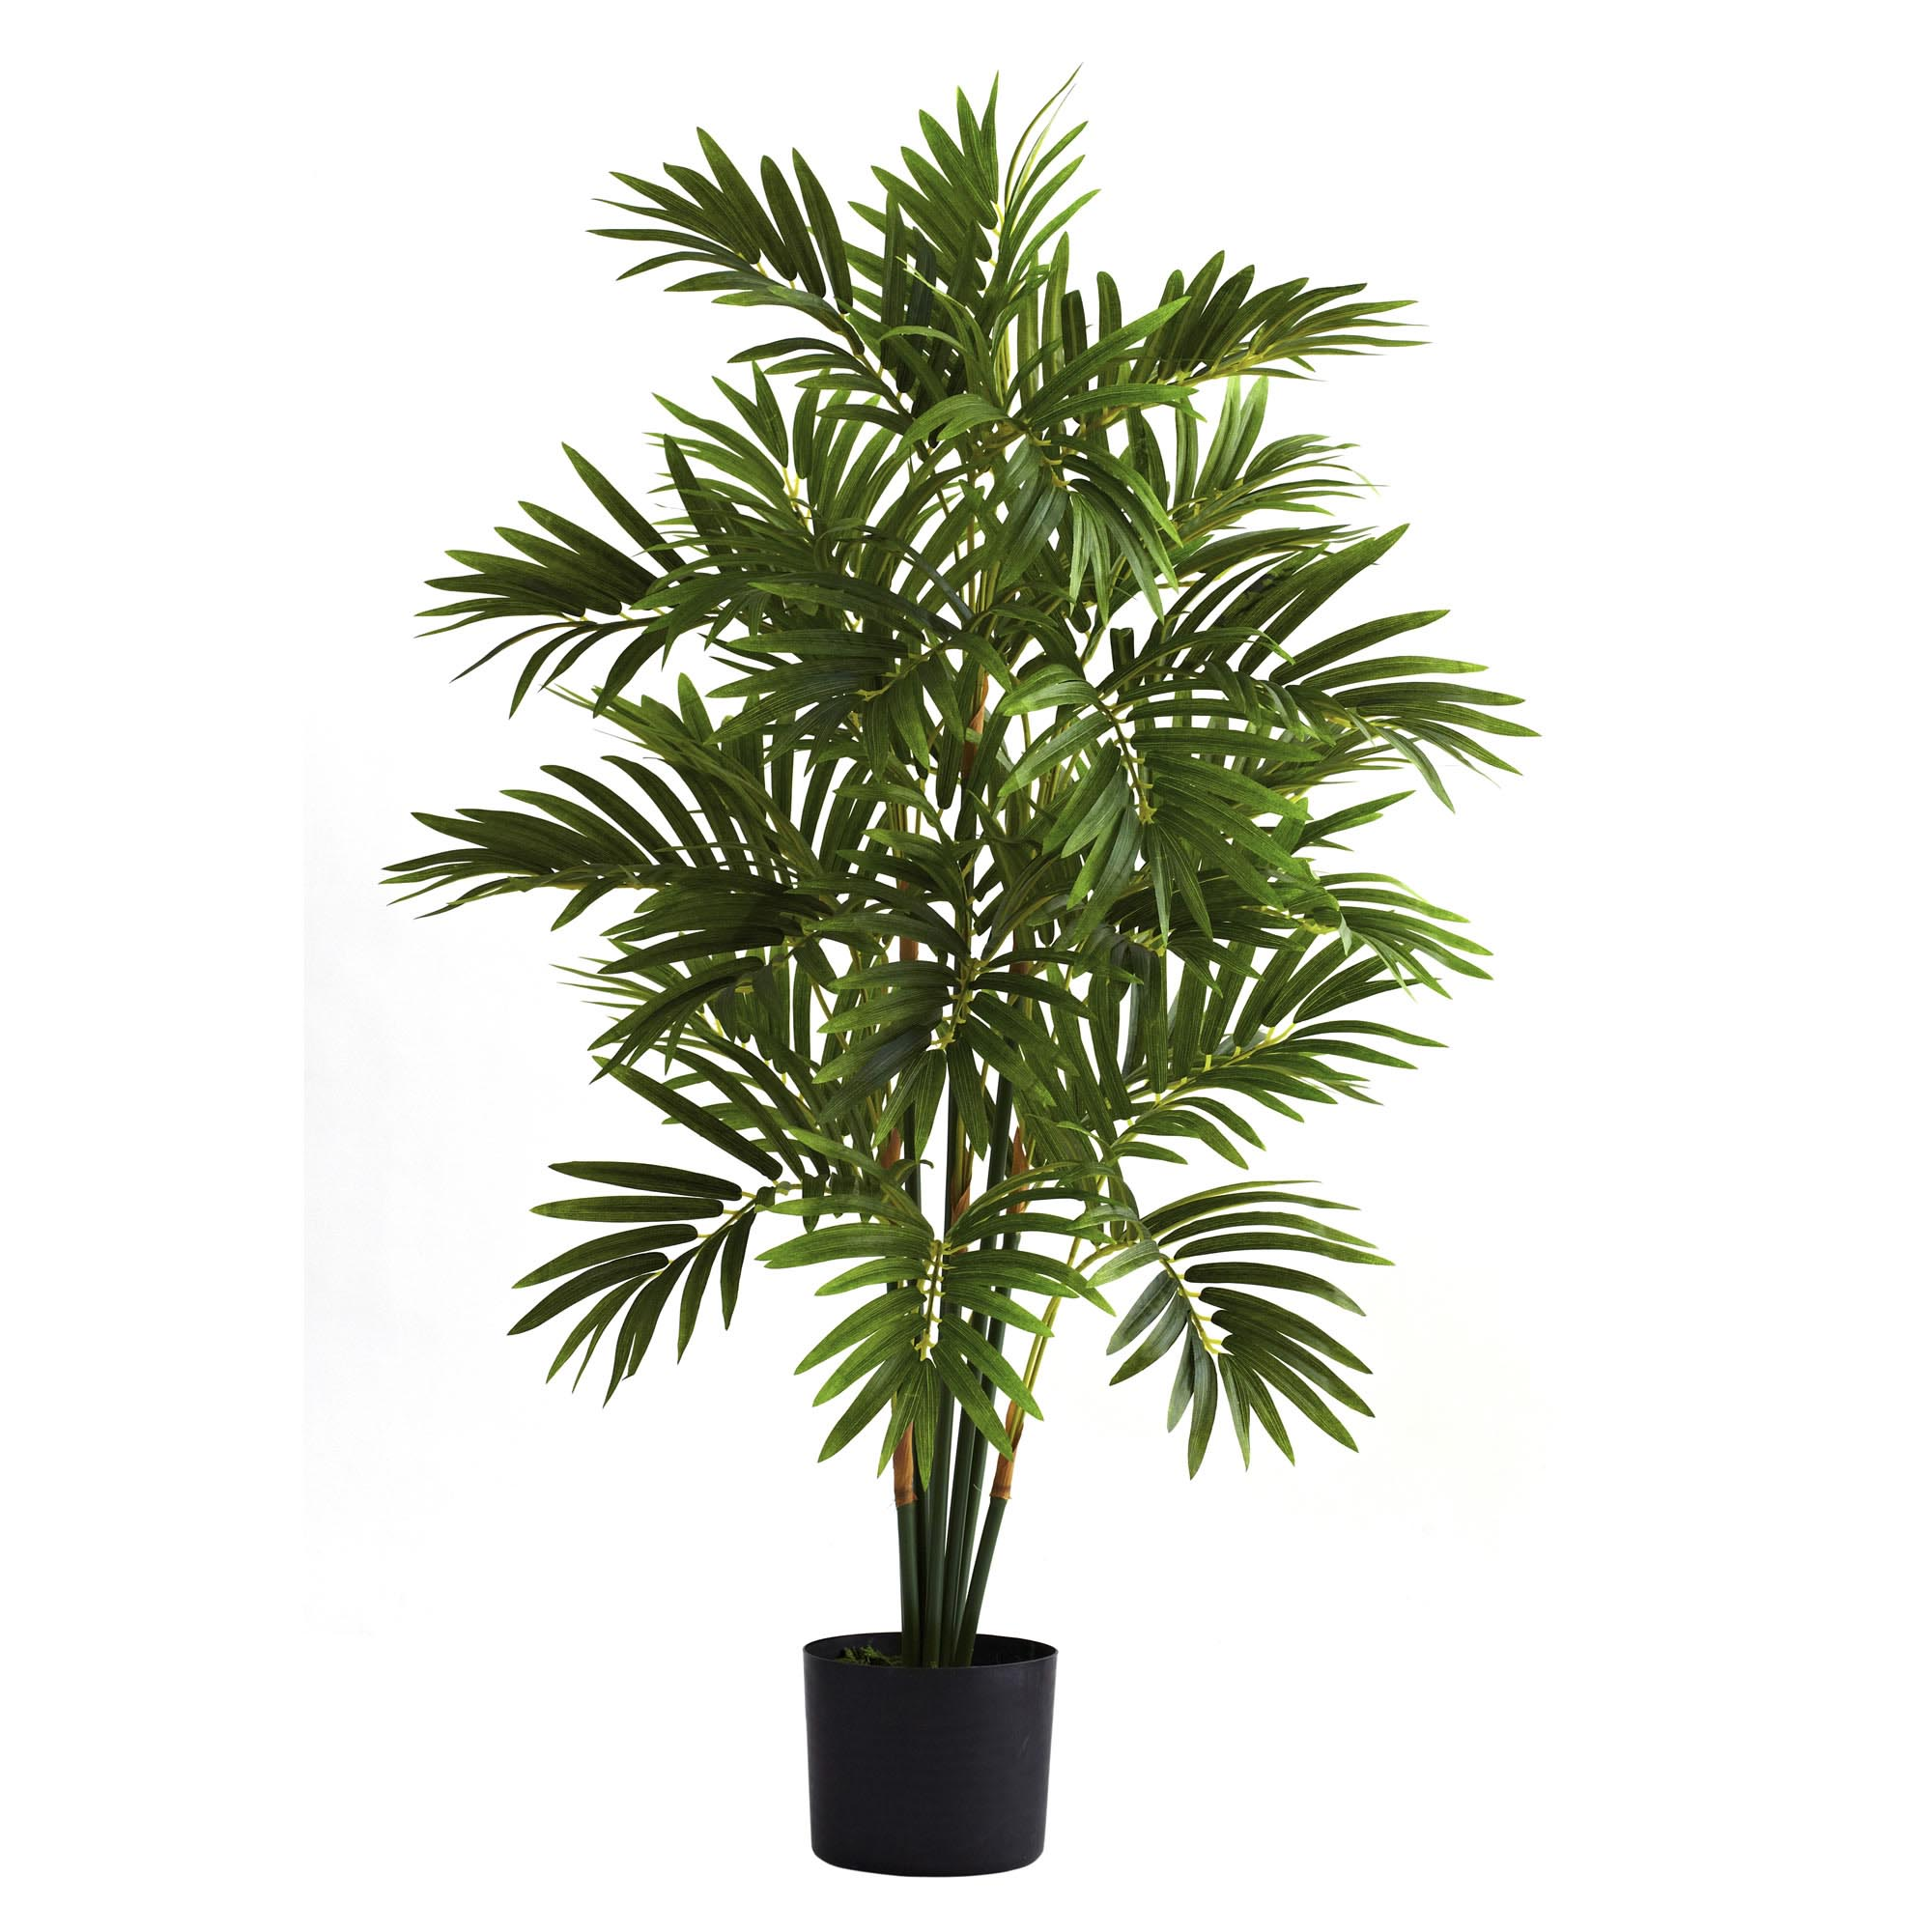 3 foot artificial areca palm tree potted 5355 for Pictures of areca palm plants